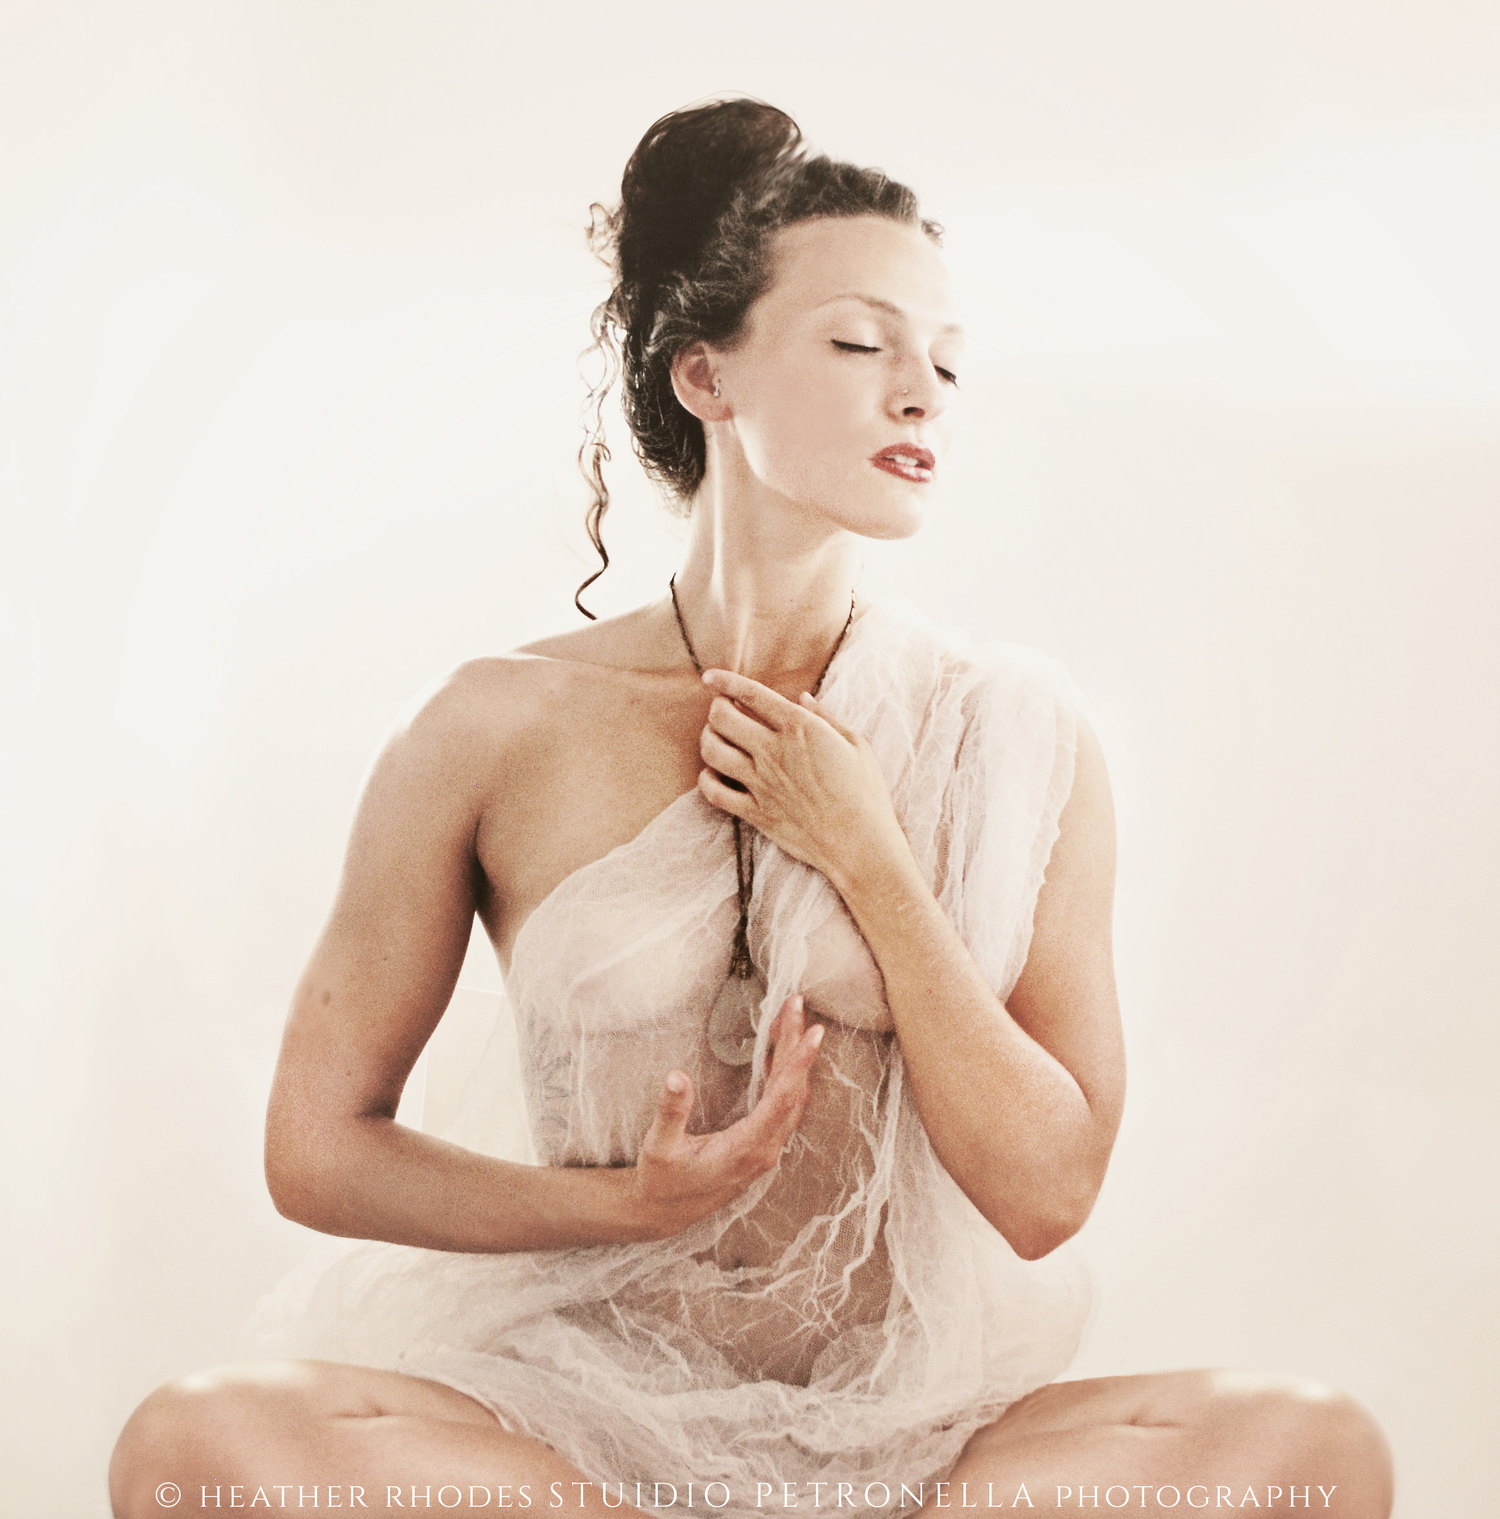 emily inner peacemaker © heather rhodes studio petronella all rights reserved.jpeg